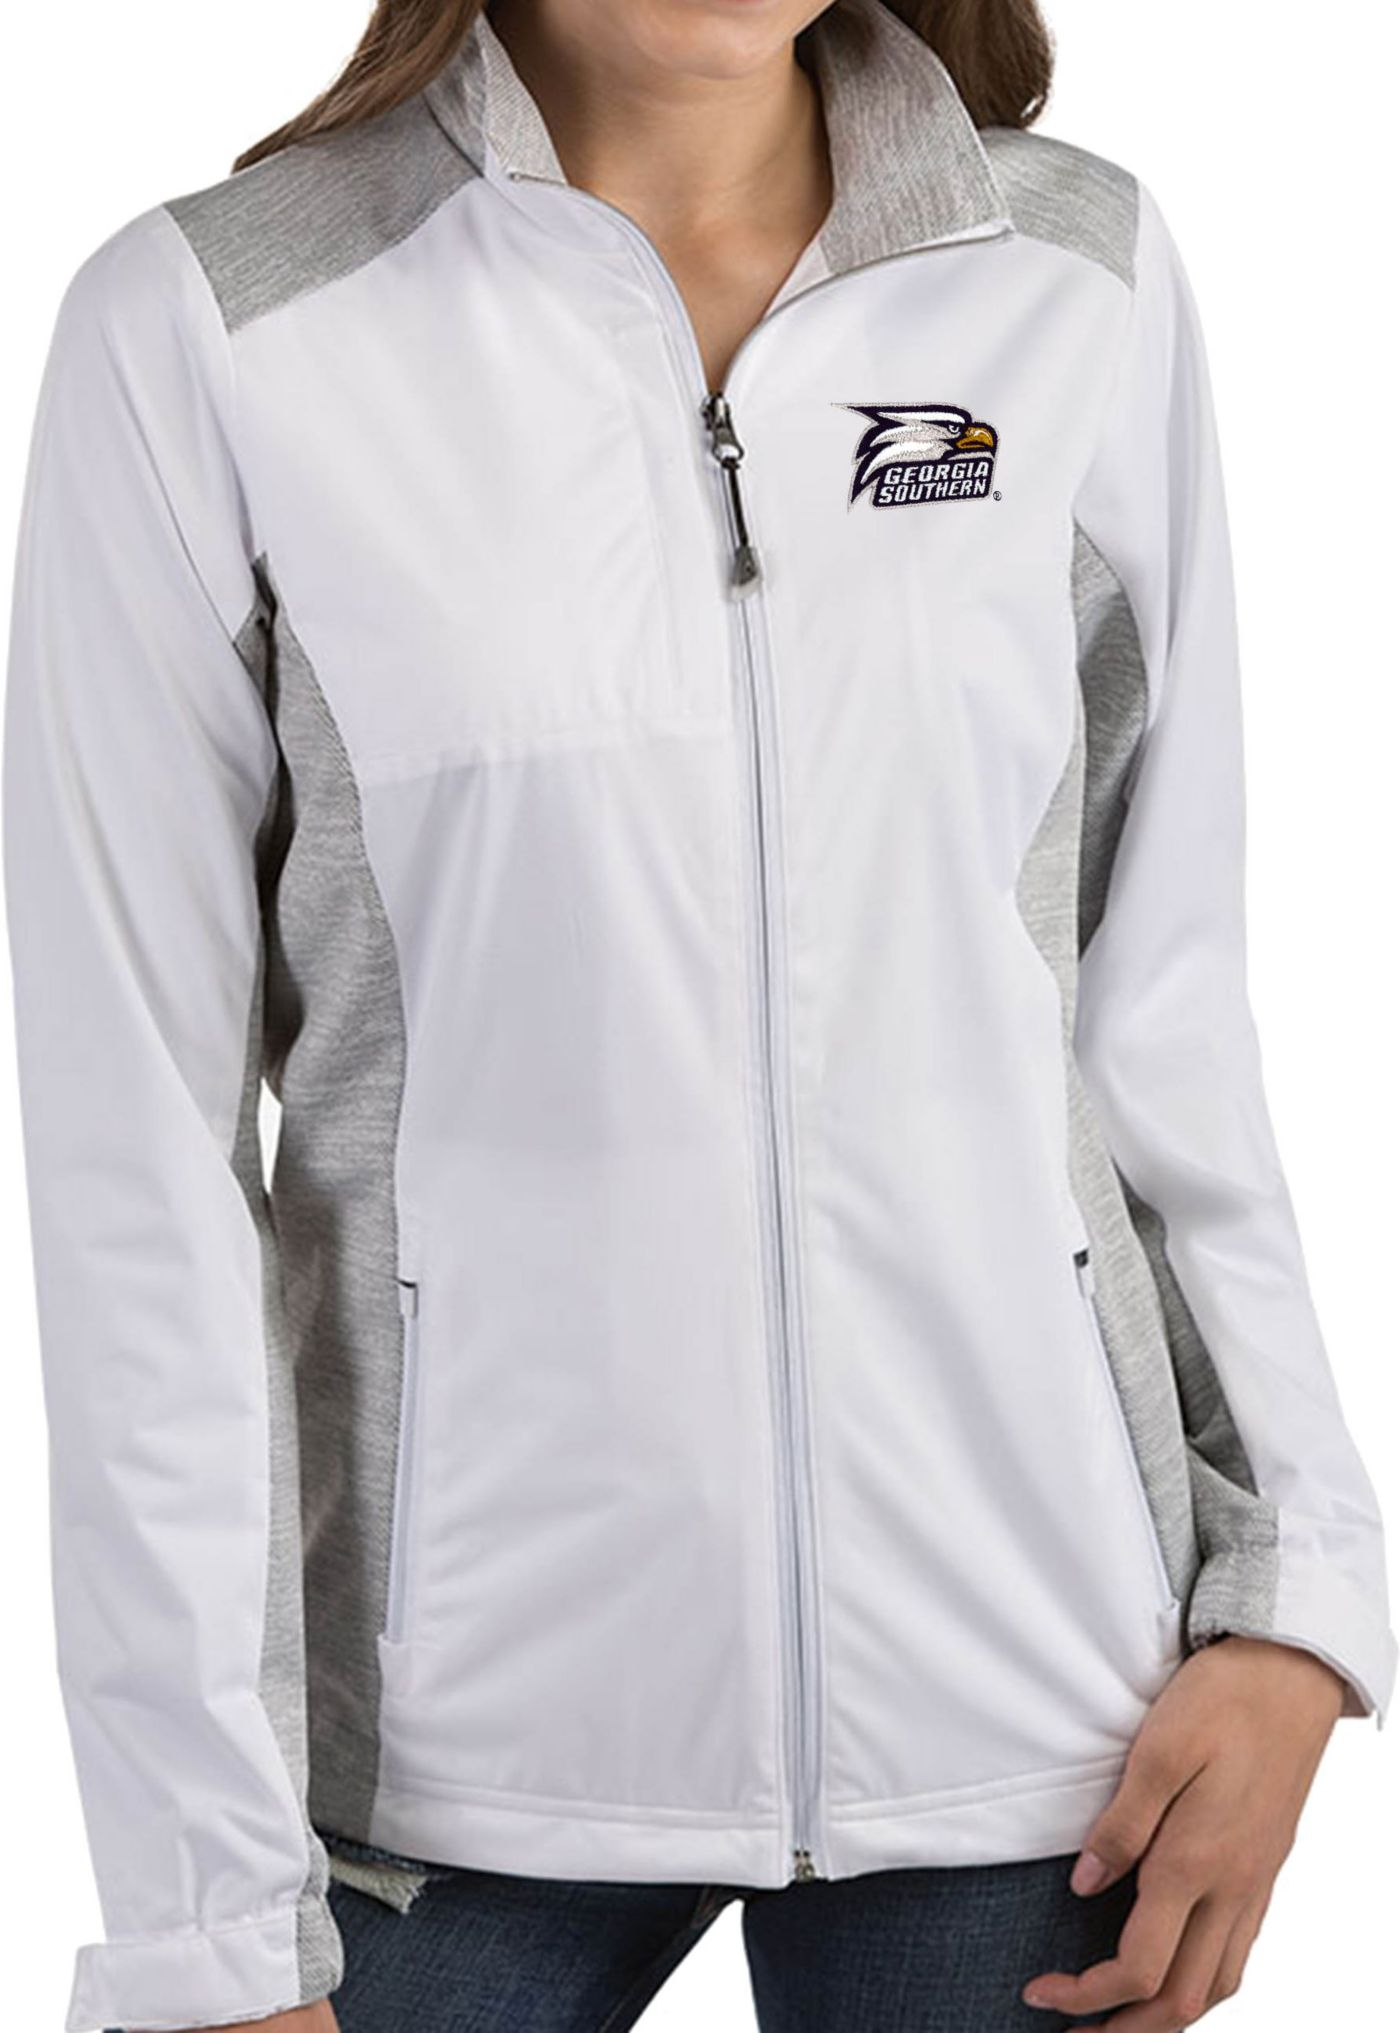 Antigua Women's Georgia Southern Eagles White  Revolve Full-Zip Jacket